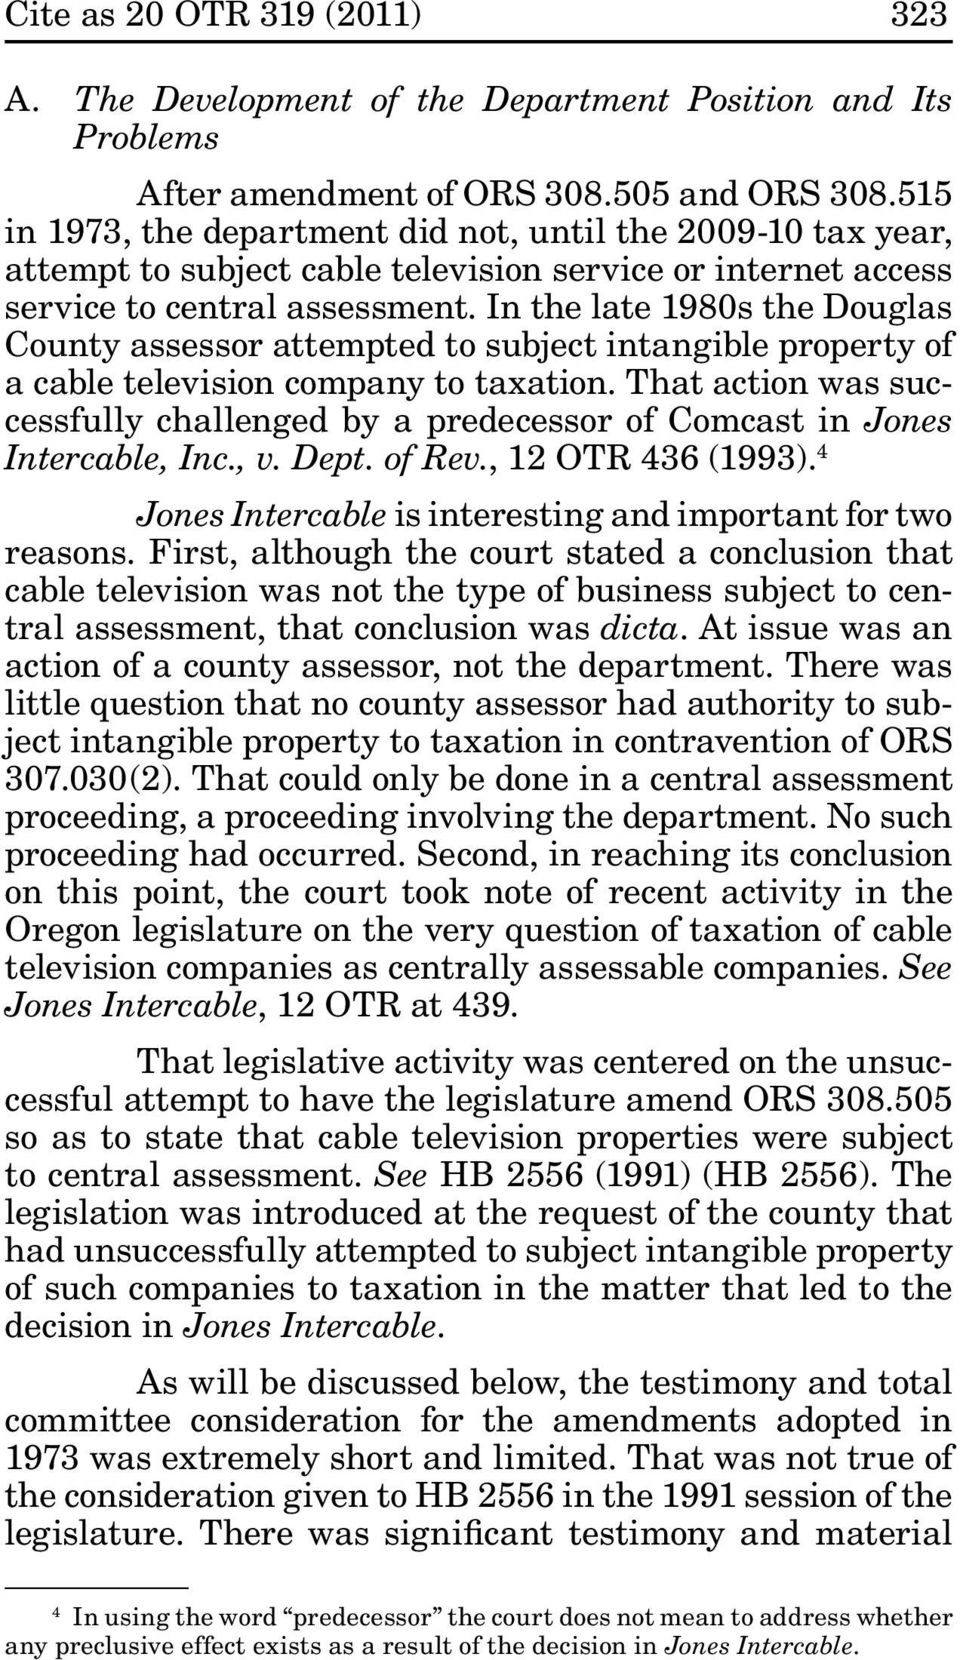 In the late 1980s the Douglas County assessor attempted to subject intangible property of a cable television company to taxation.